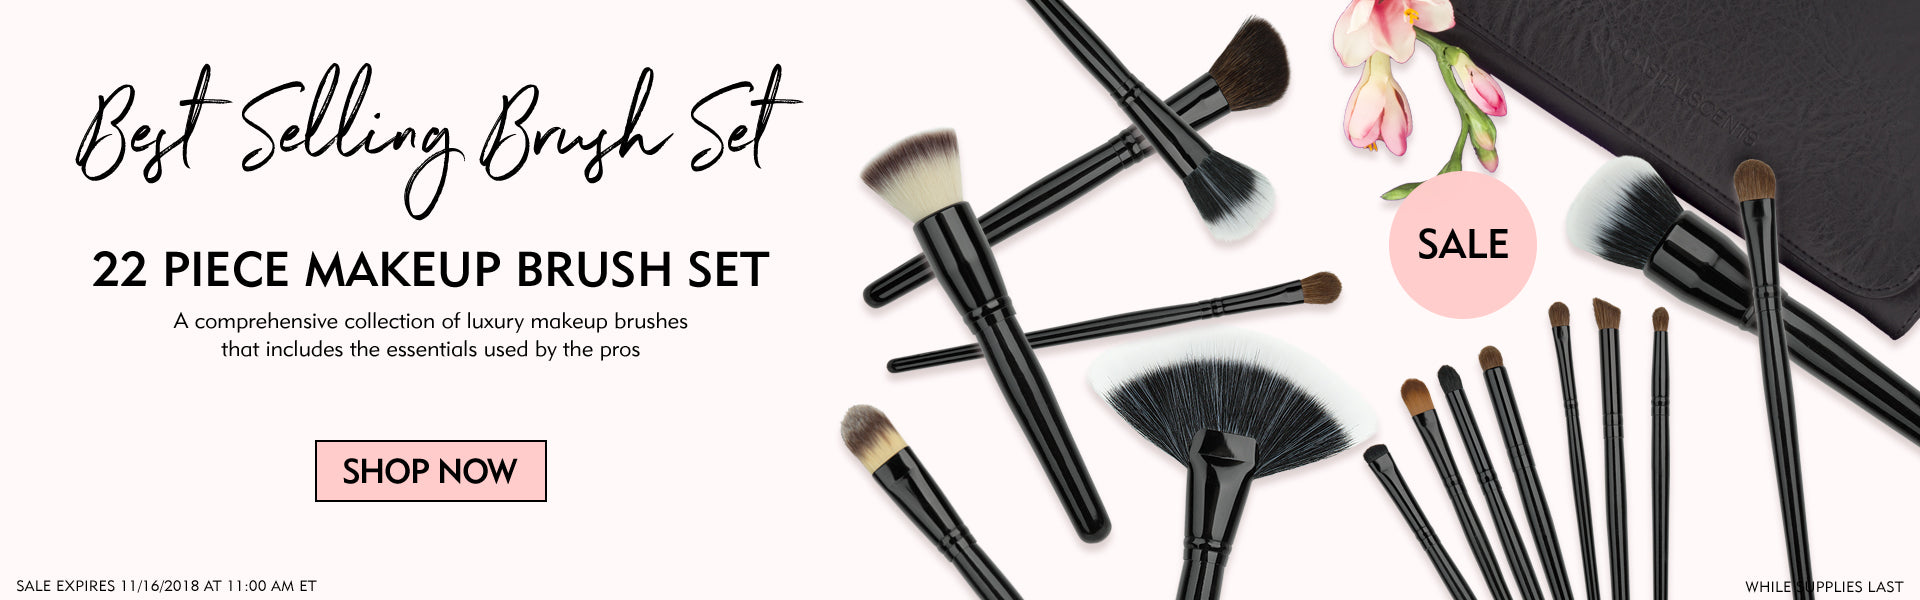 22 Piece Makeup Brush Set Sale